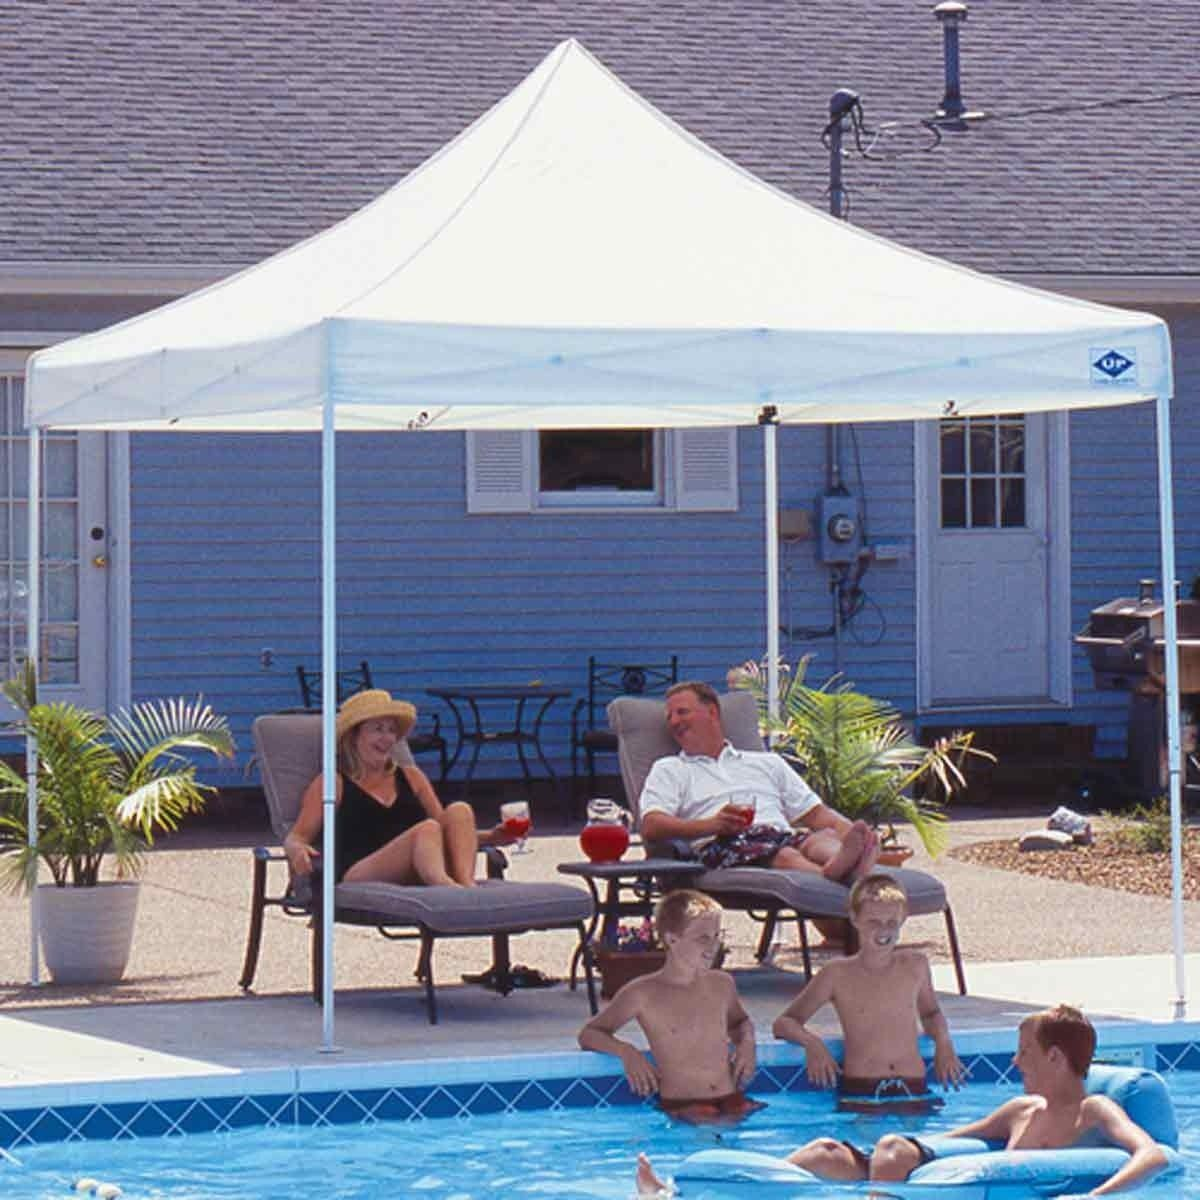 Get Outdoor Protection at a Great Price with Canopies, Sheds, and Tents